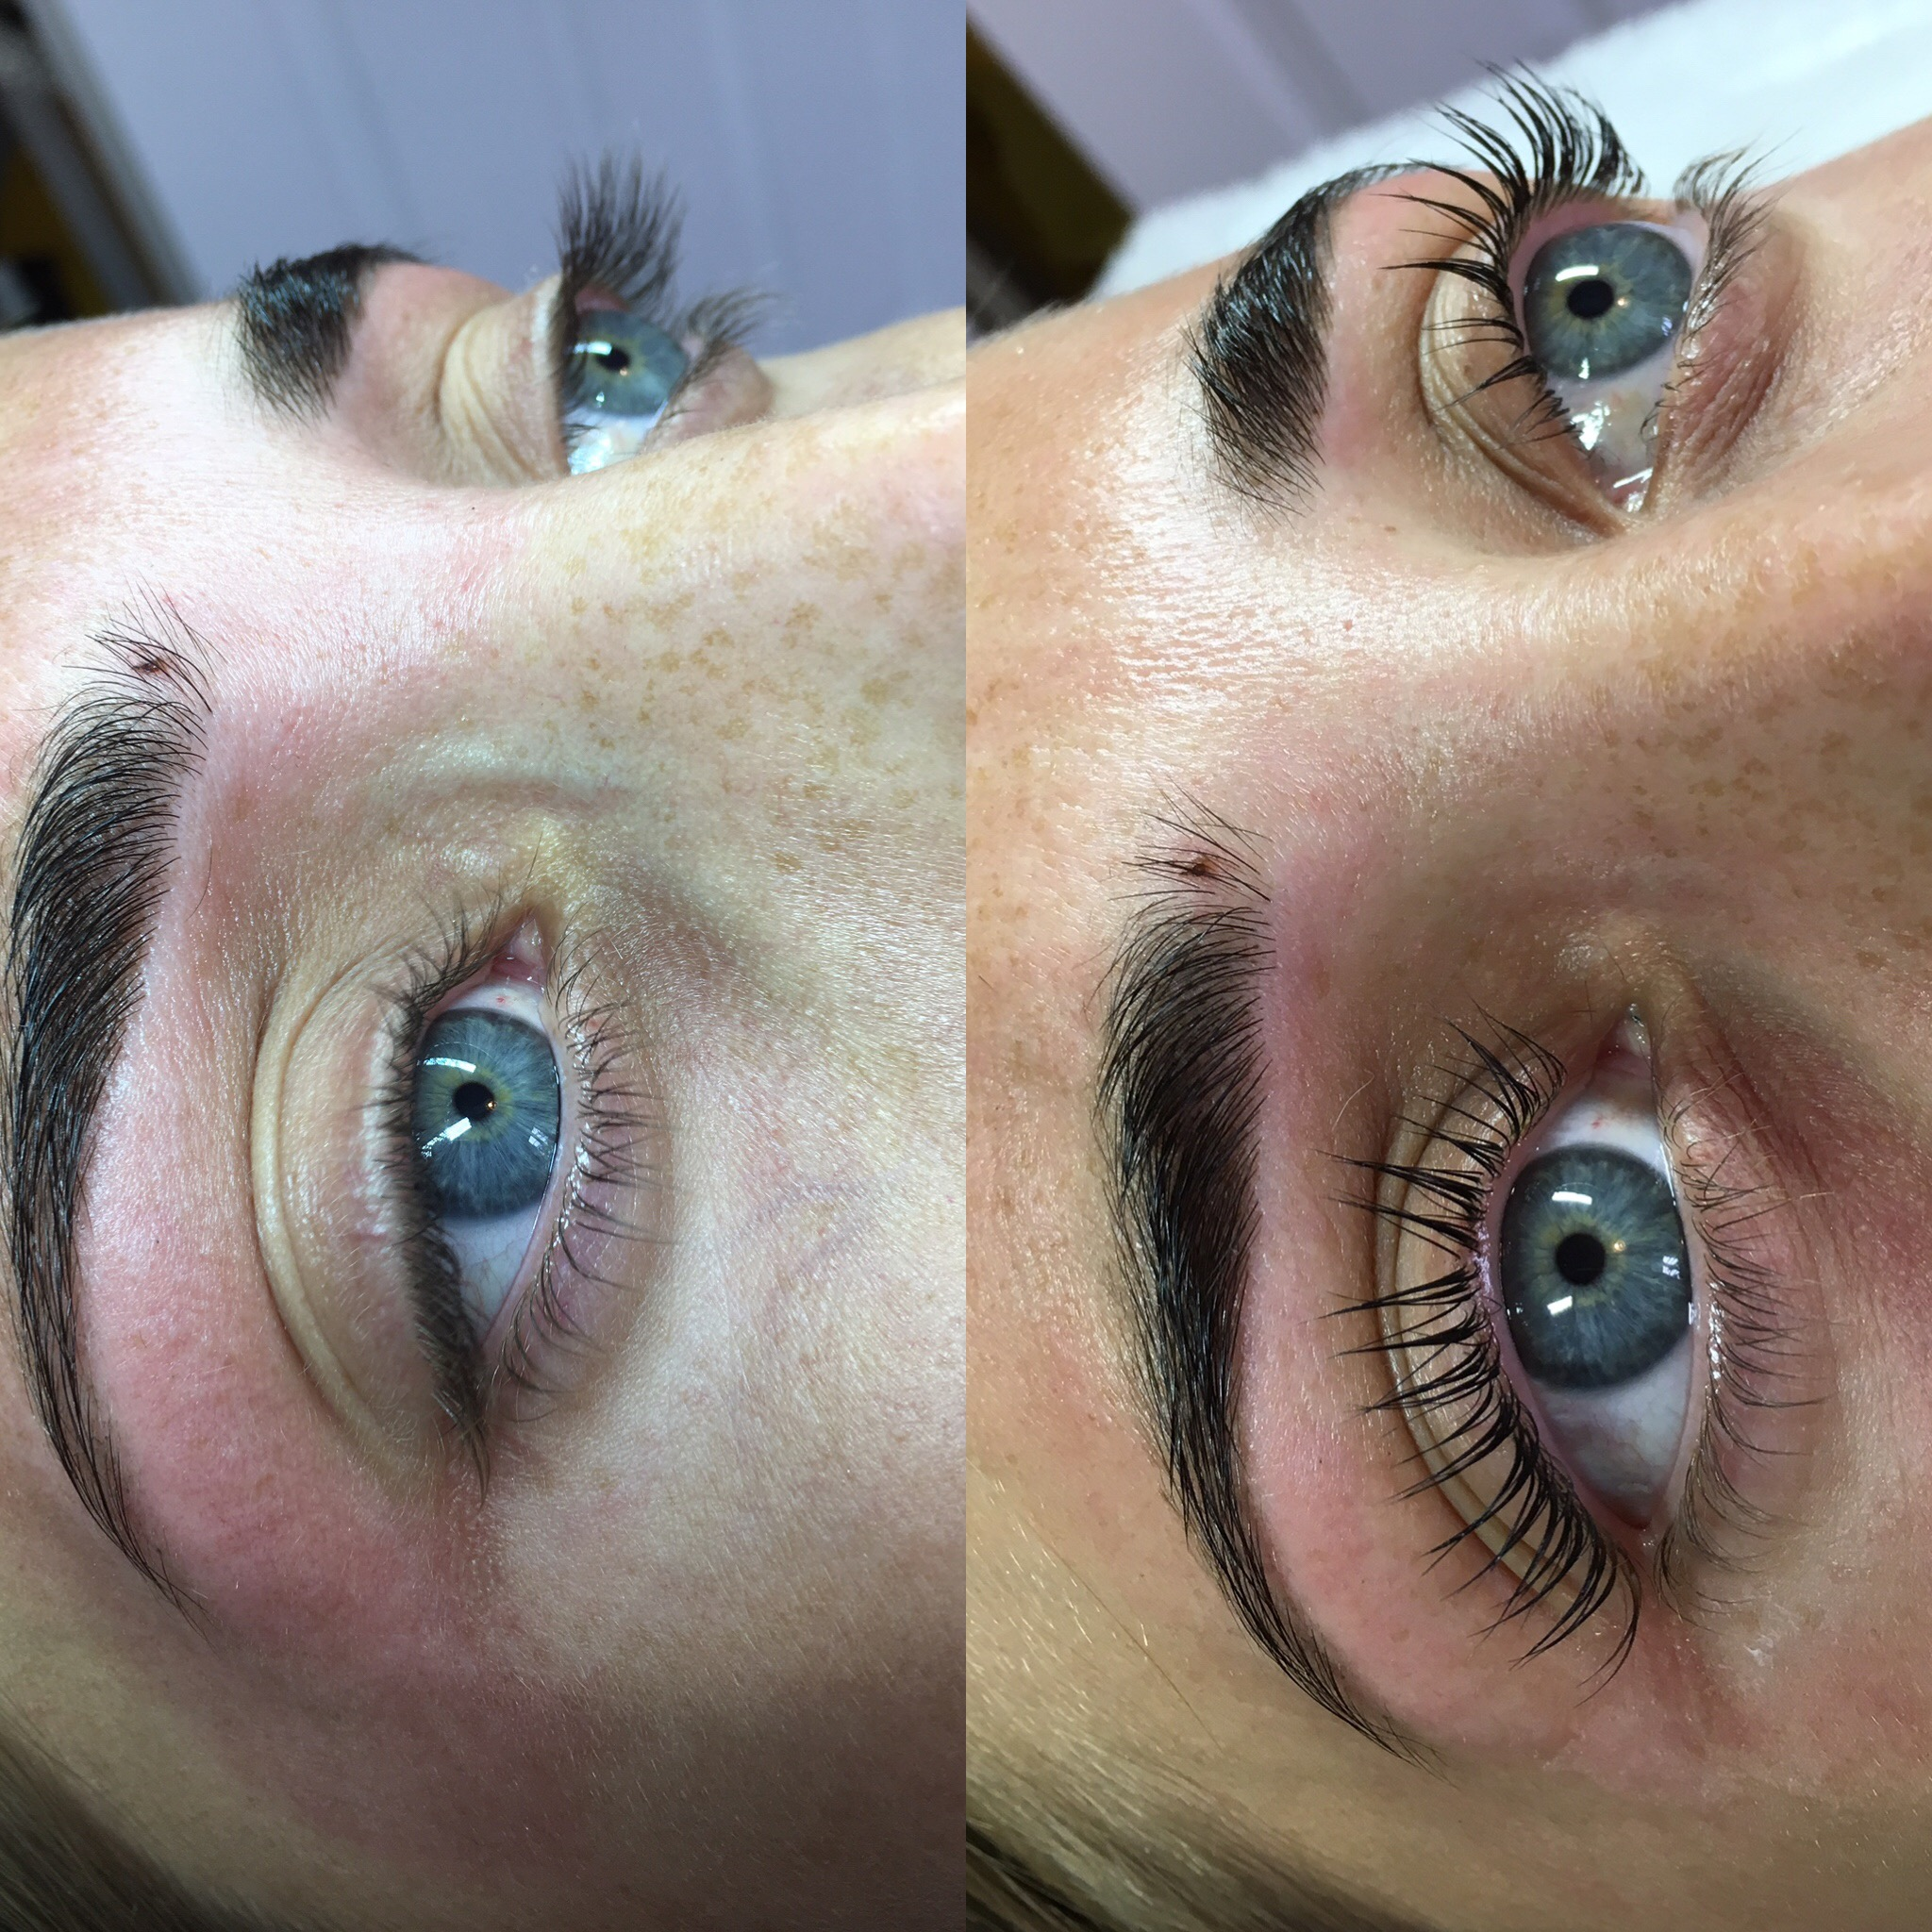 HD Brows & LVL Lash Combo